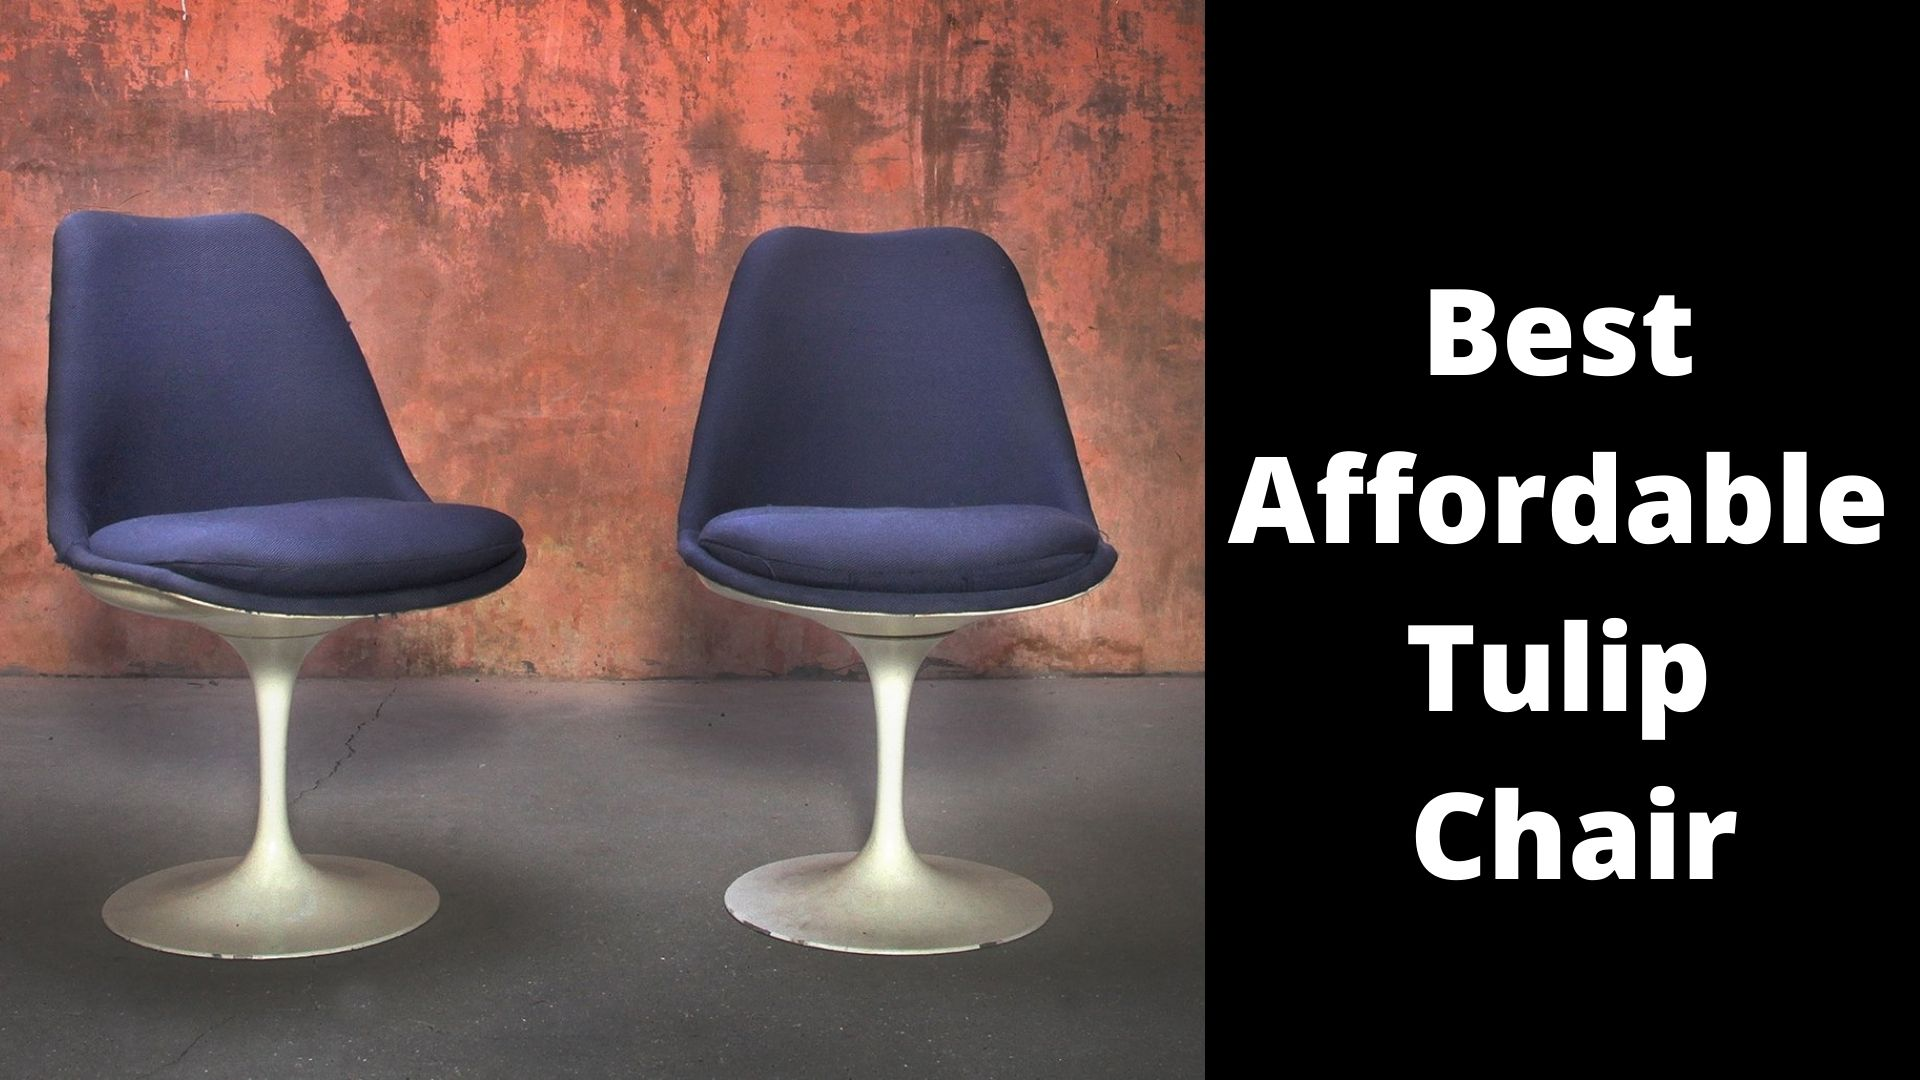 Best Affordable Tulip Chair